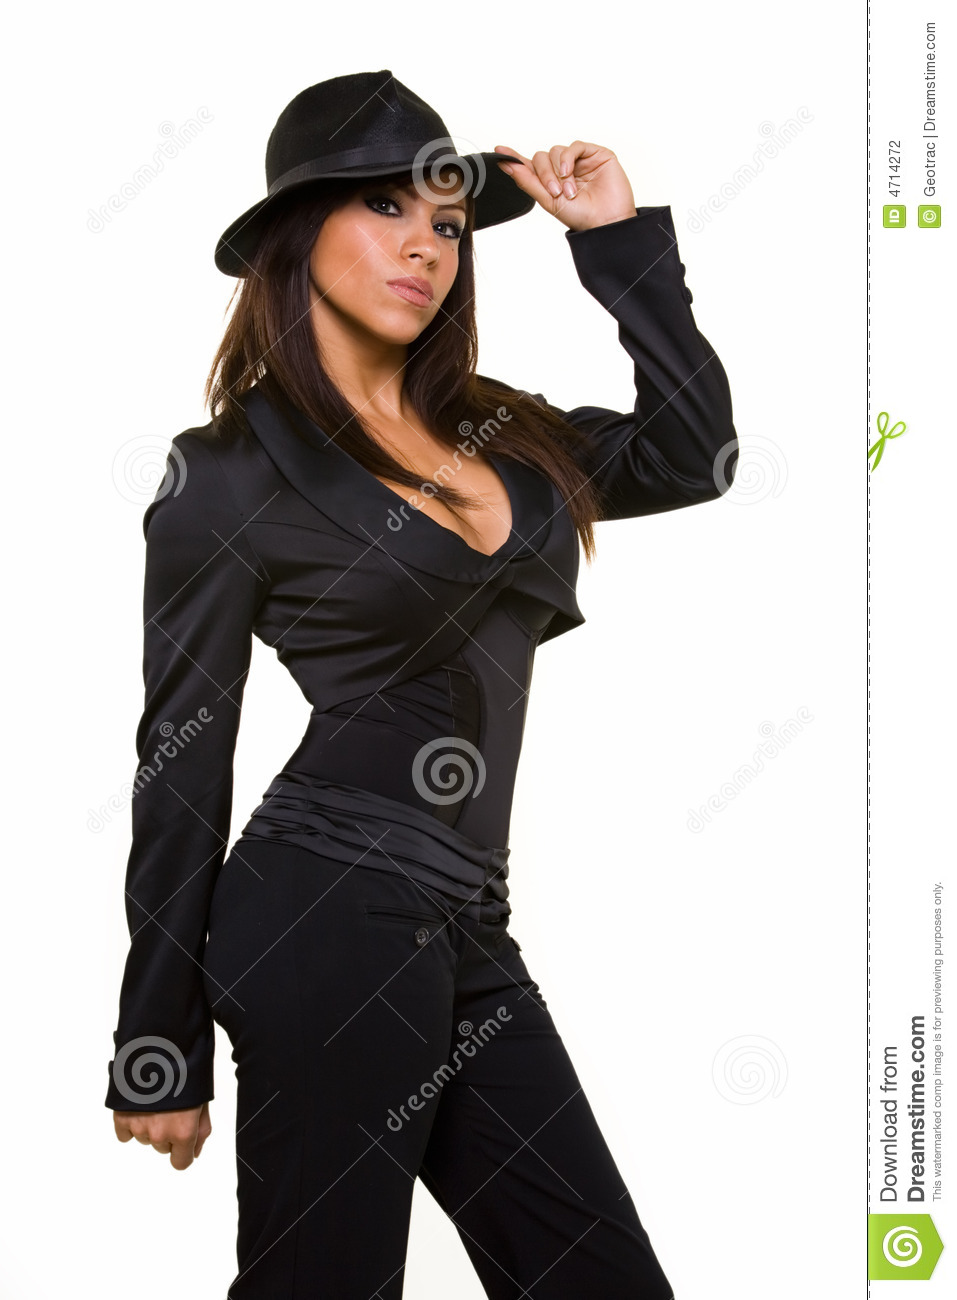 Gangster Attire Stock Photo Image Of Brunette Person